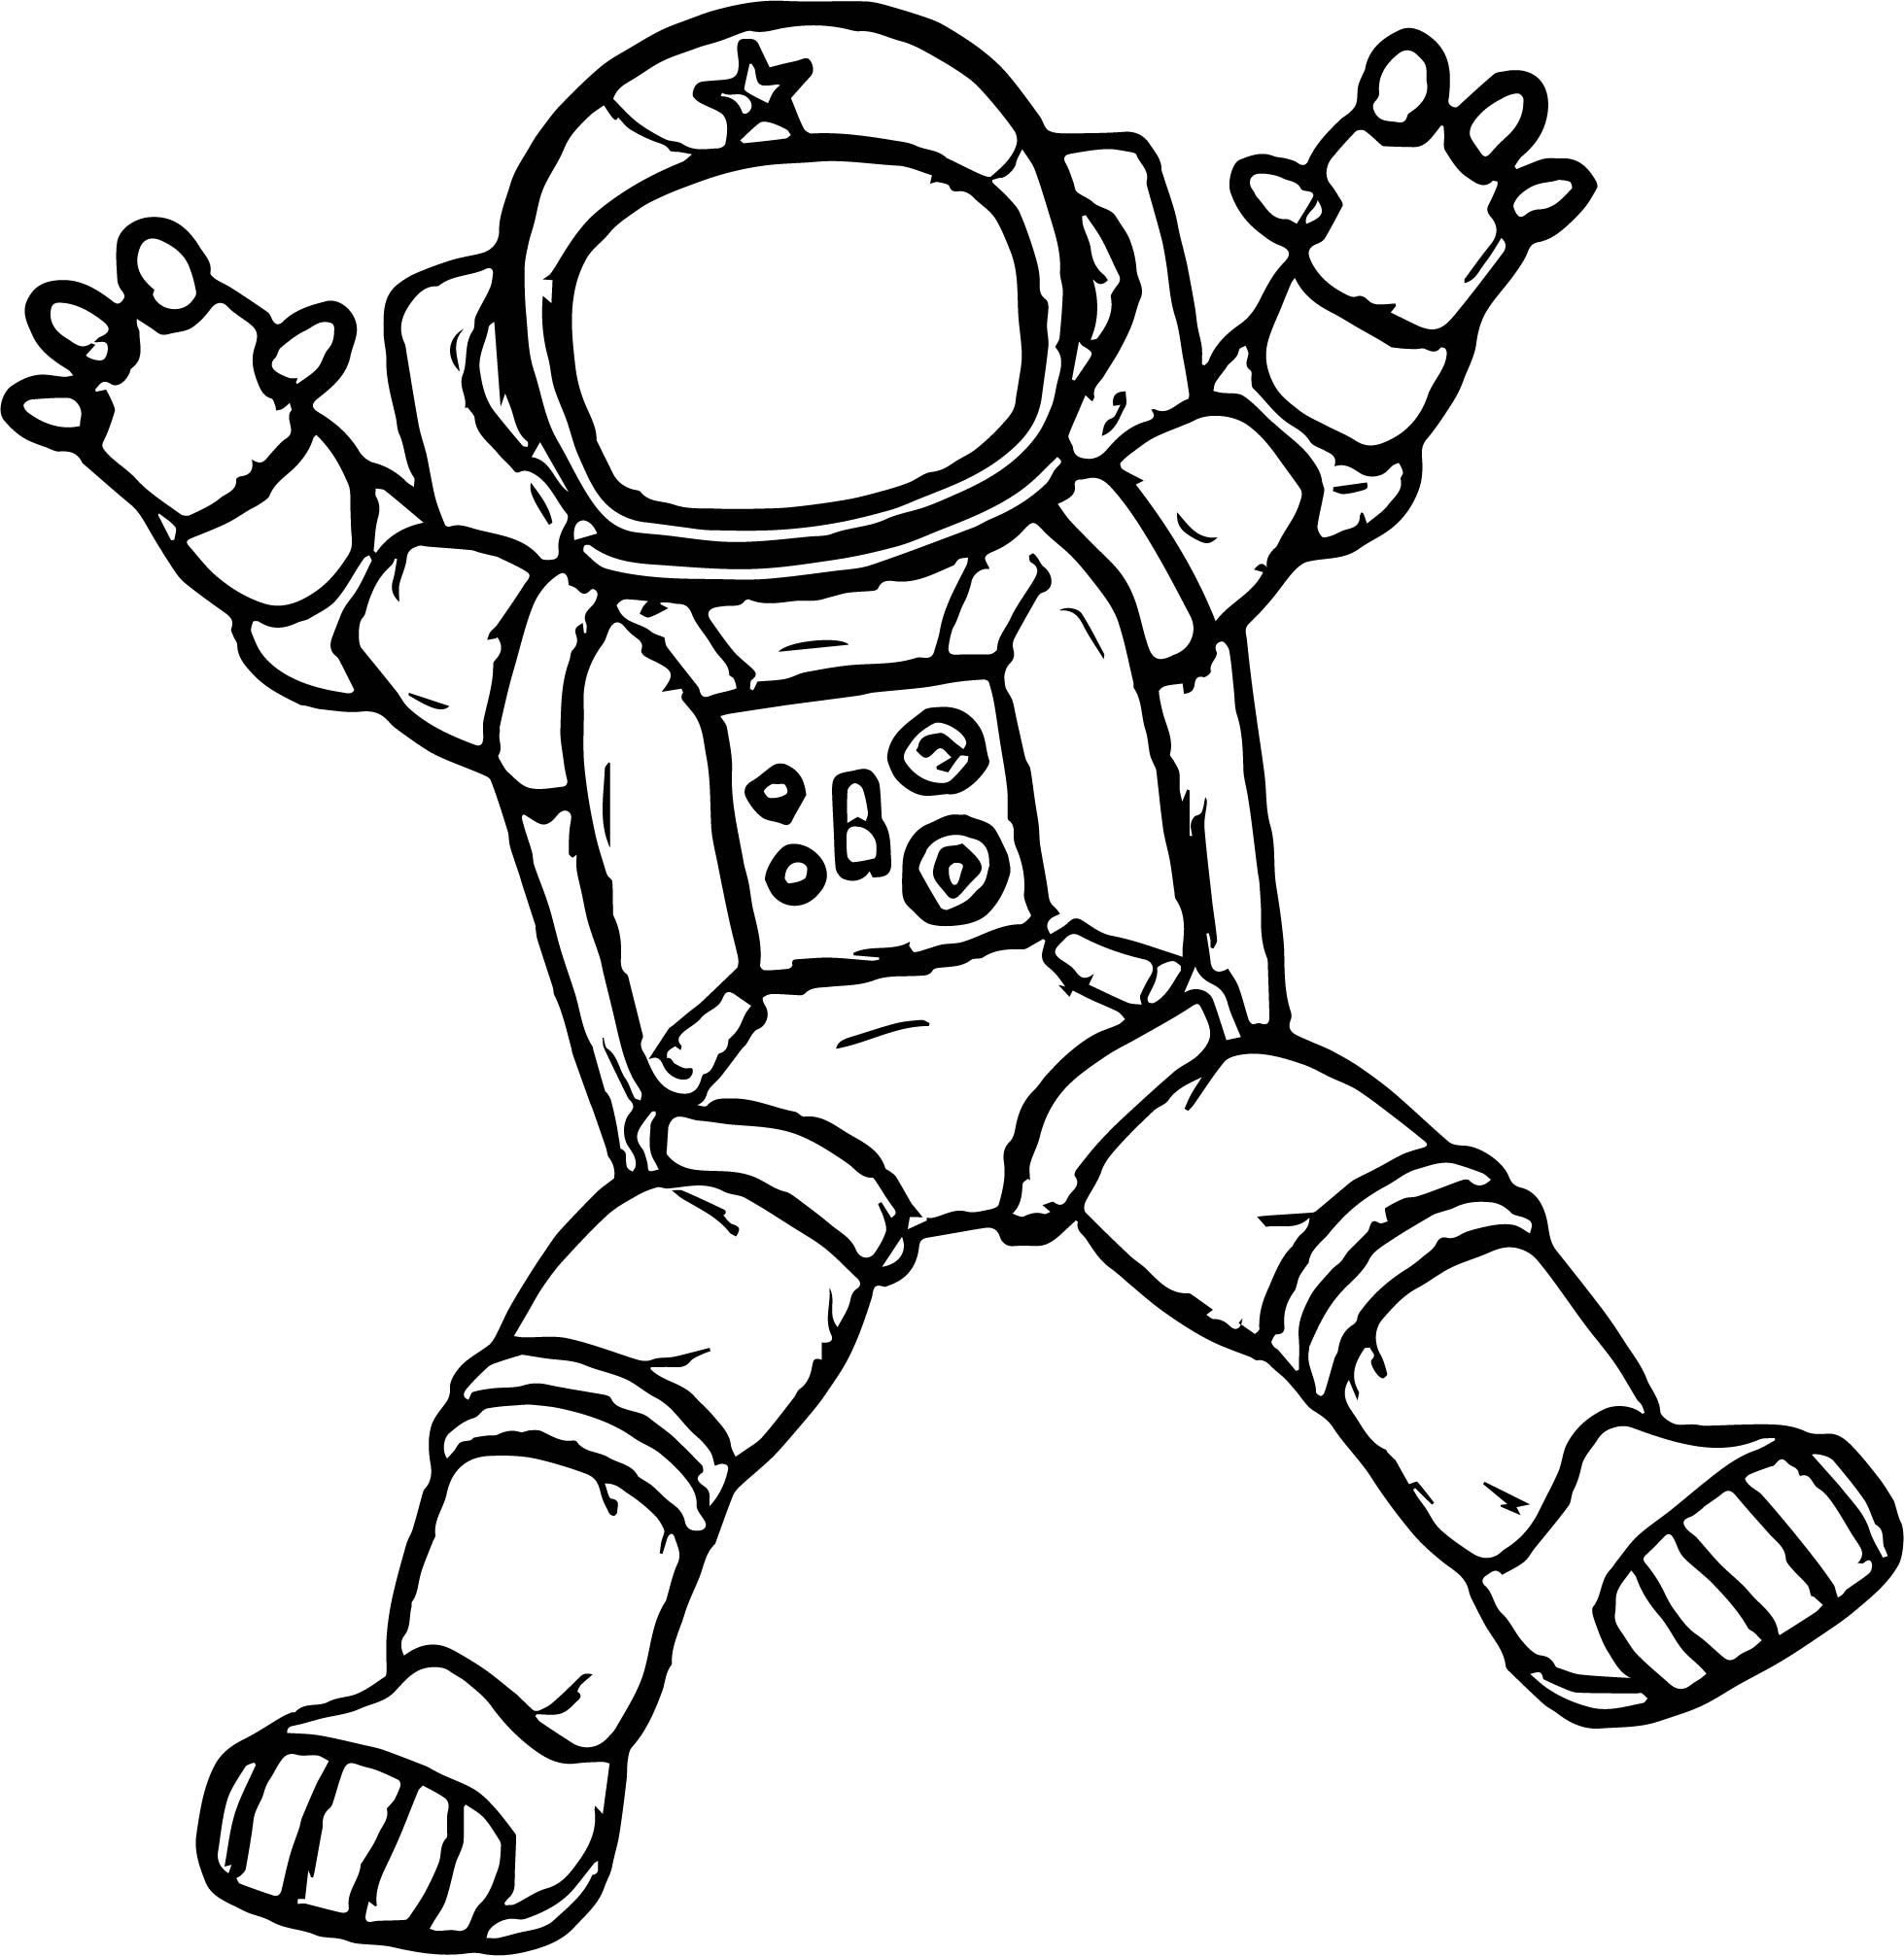 astronaut body coloring page cool astronaut holding glass coloring page space coloring page body astronaut